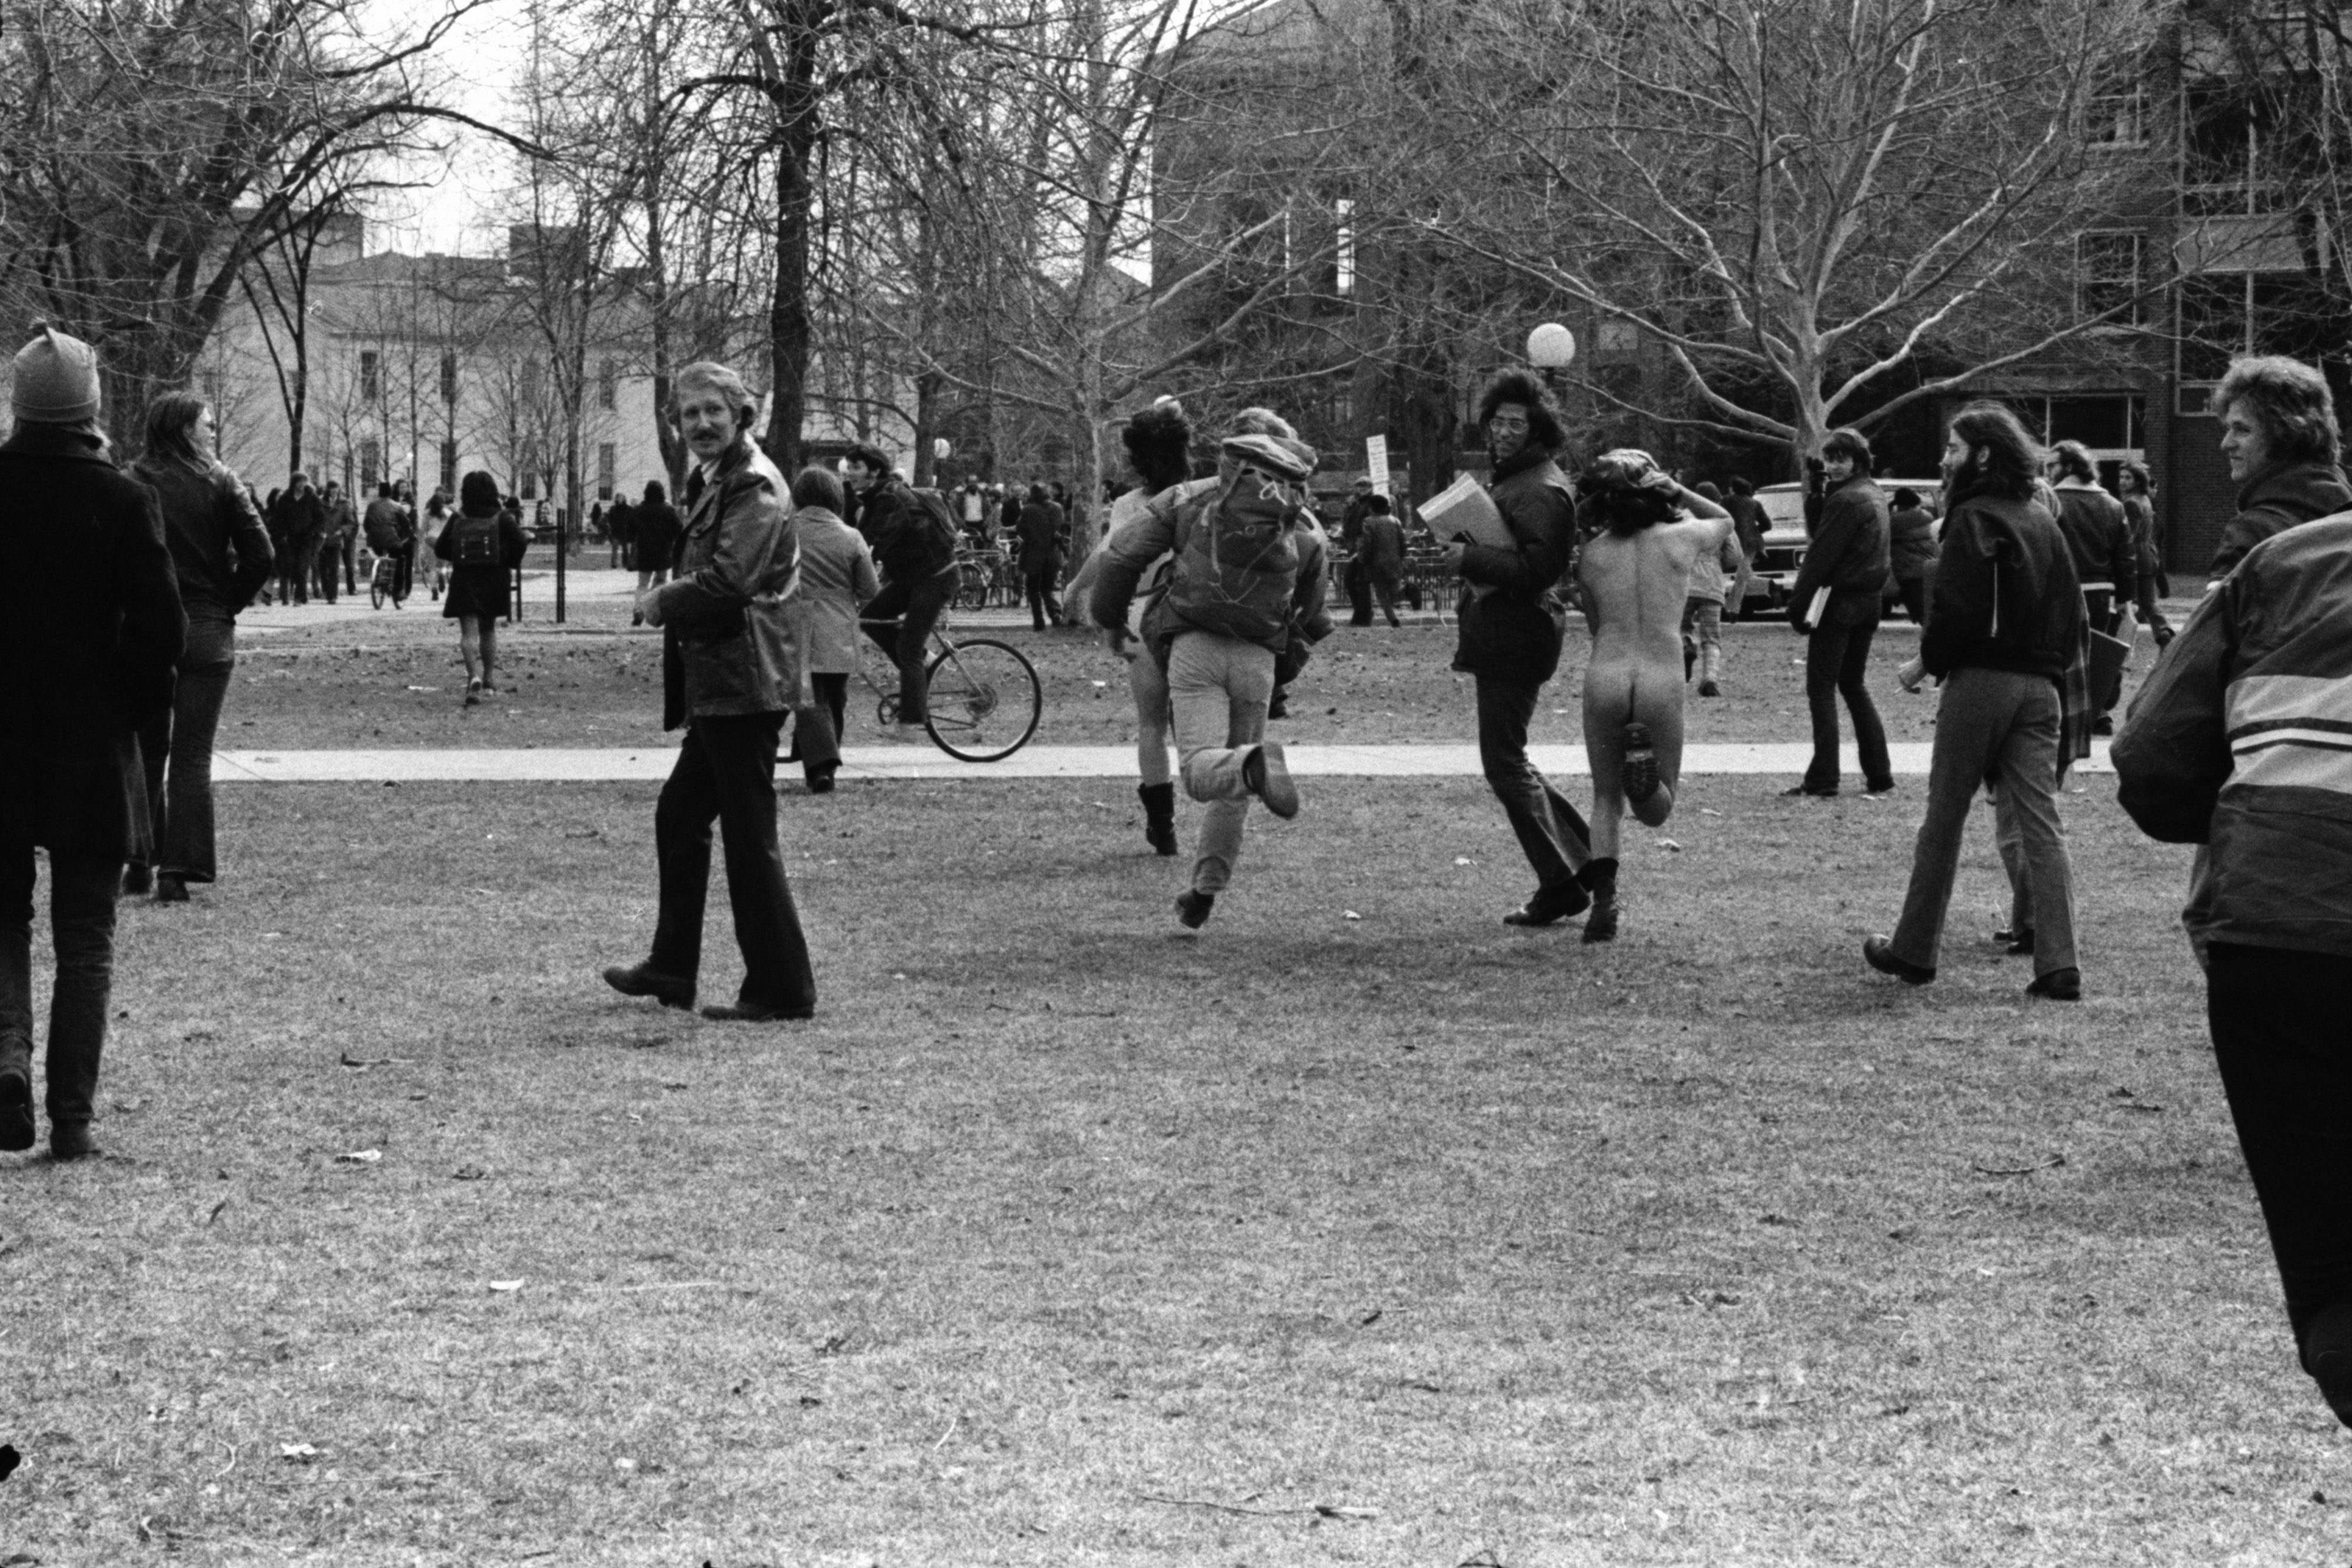 Streakers run across the U-M campus, March 1974 image